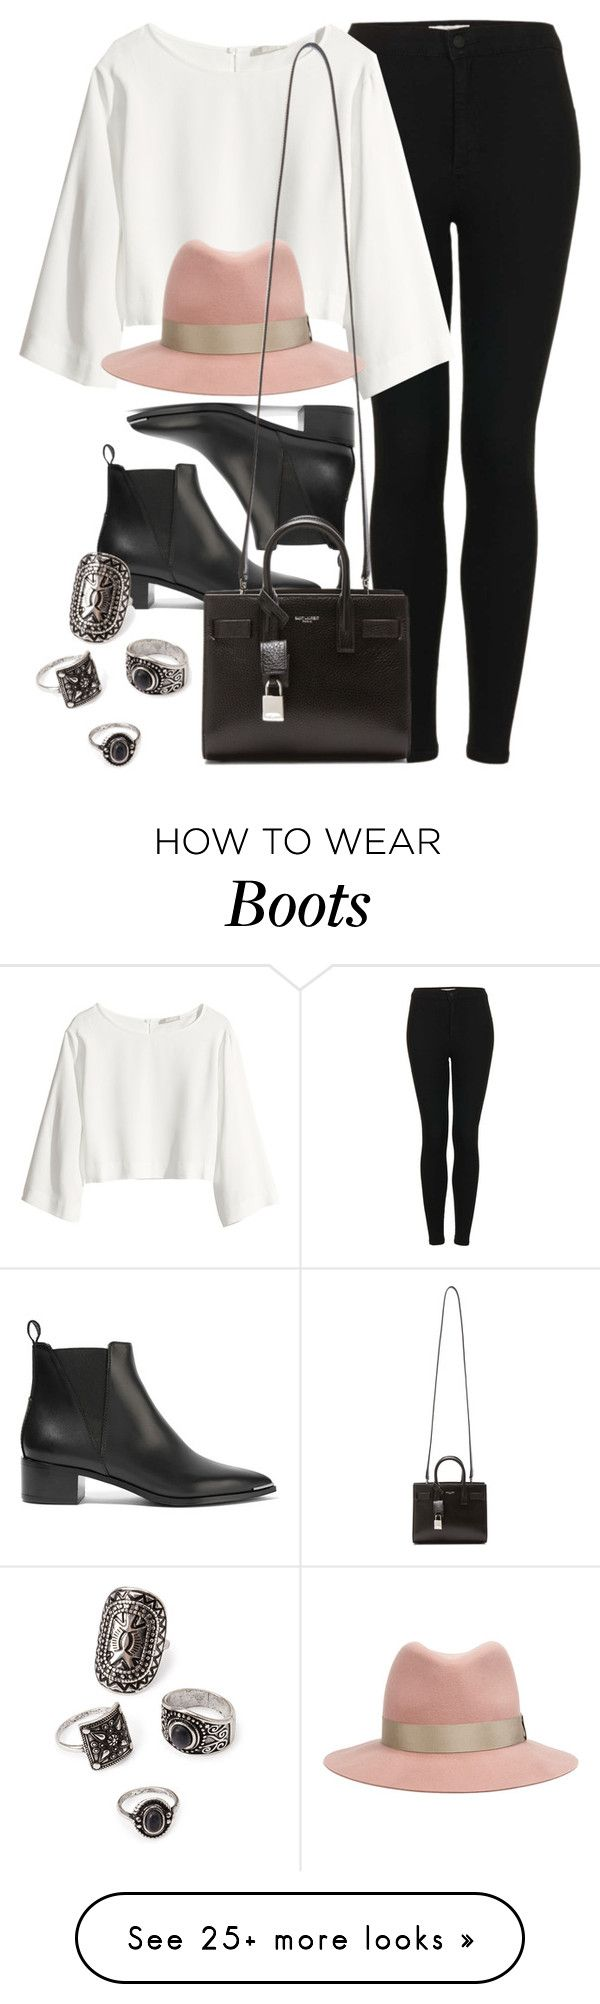 """Style #10584"" by vany-alvarado on Polyvore featuring Topshop, H&M, rag & bone, Acne Studios, Yves Saint Laurent and Forever 21"